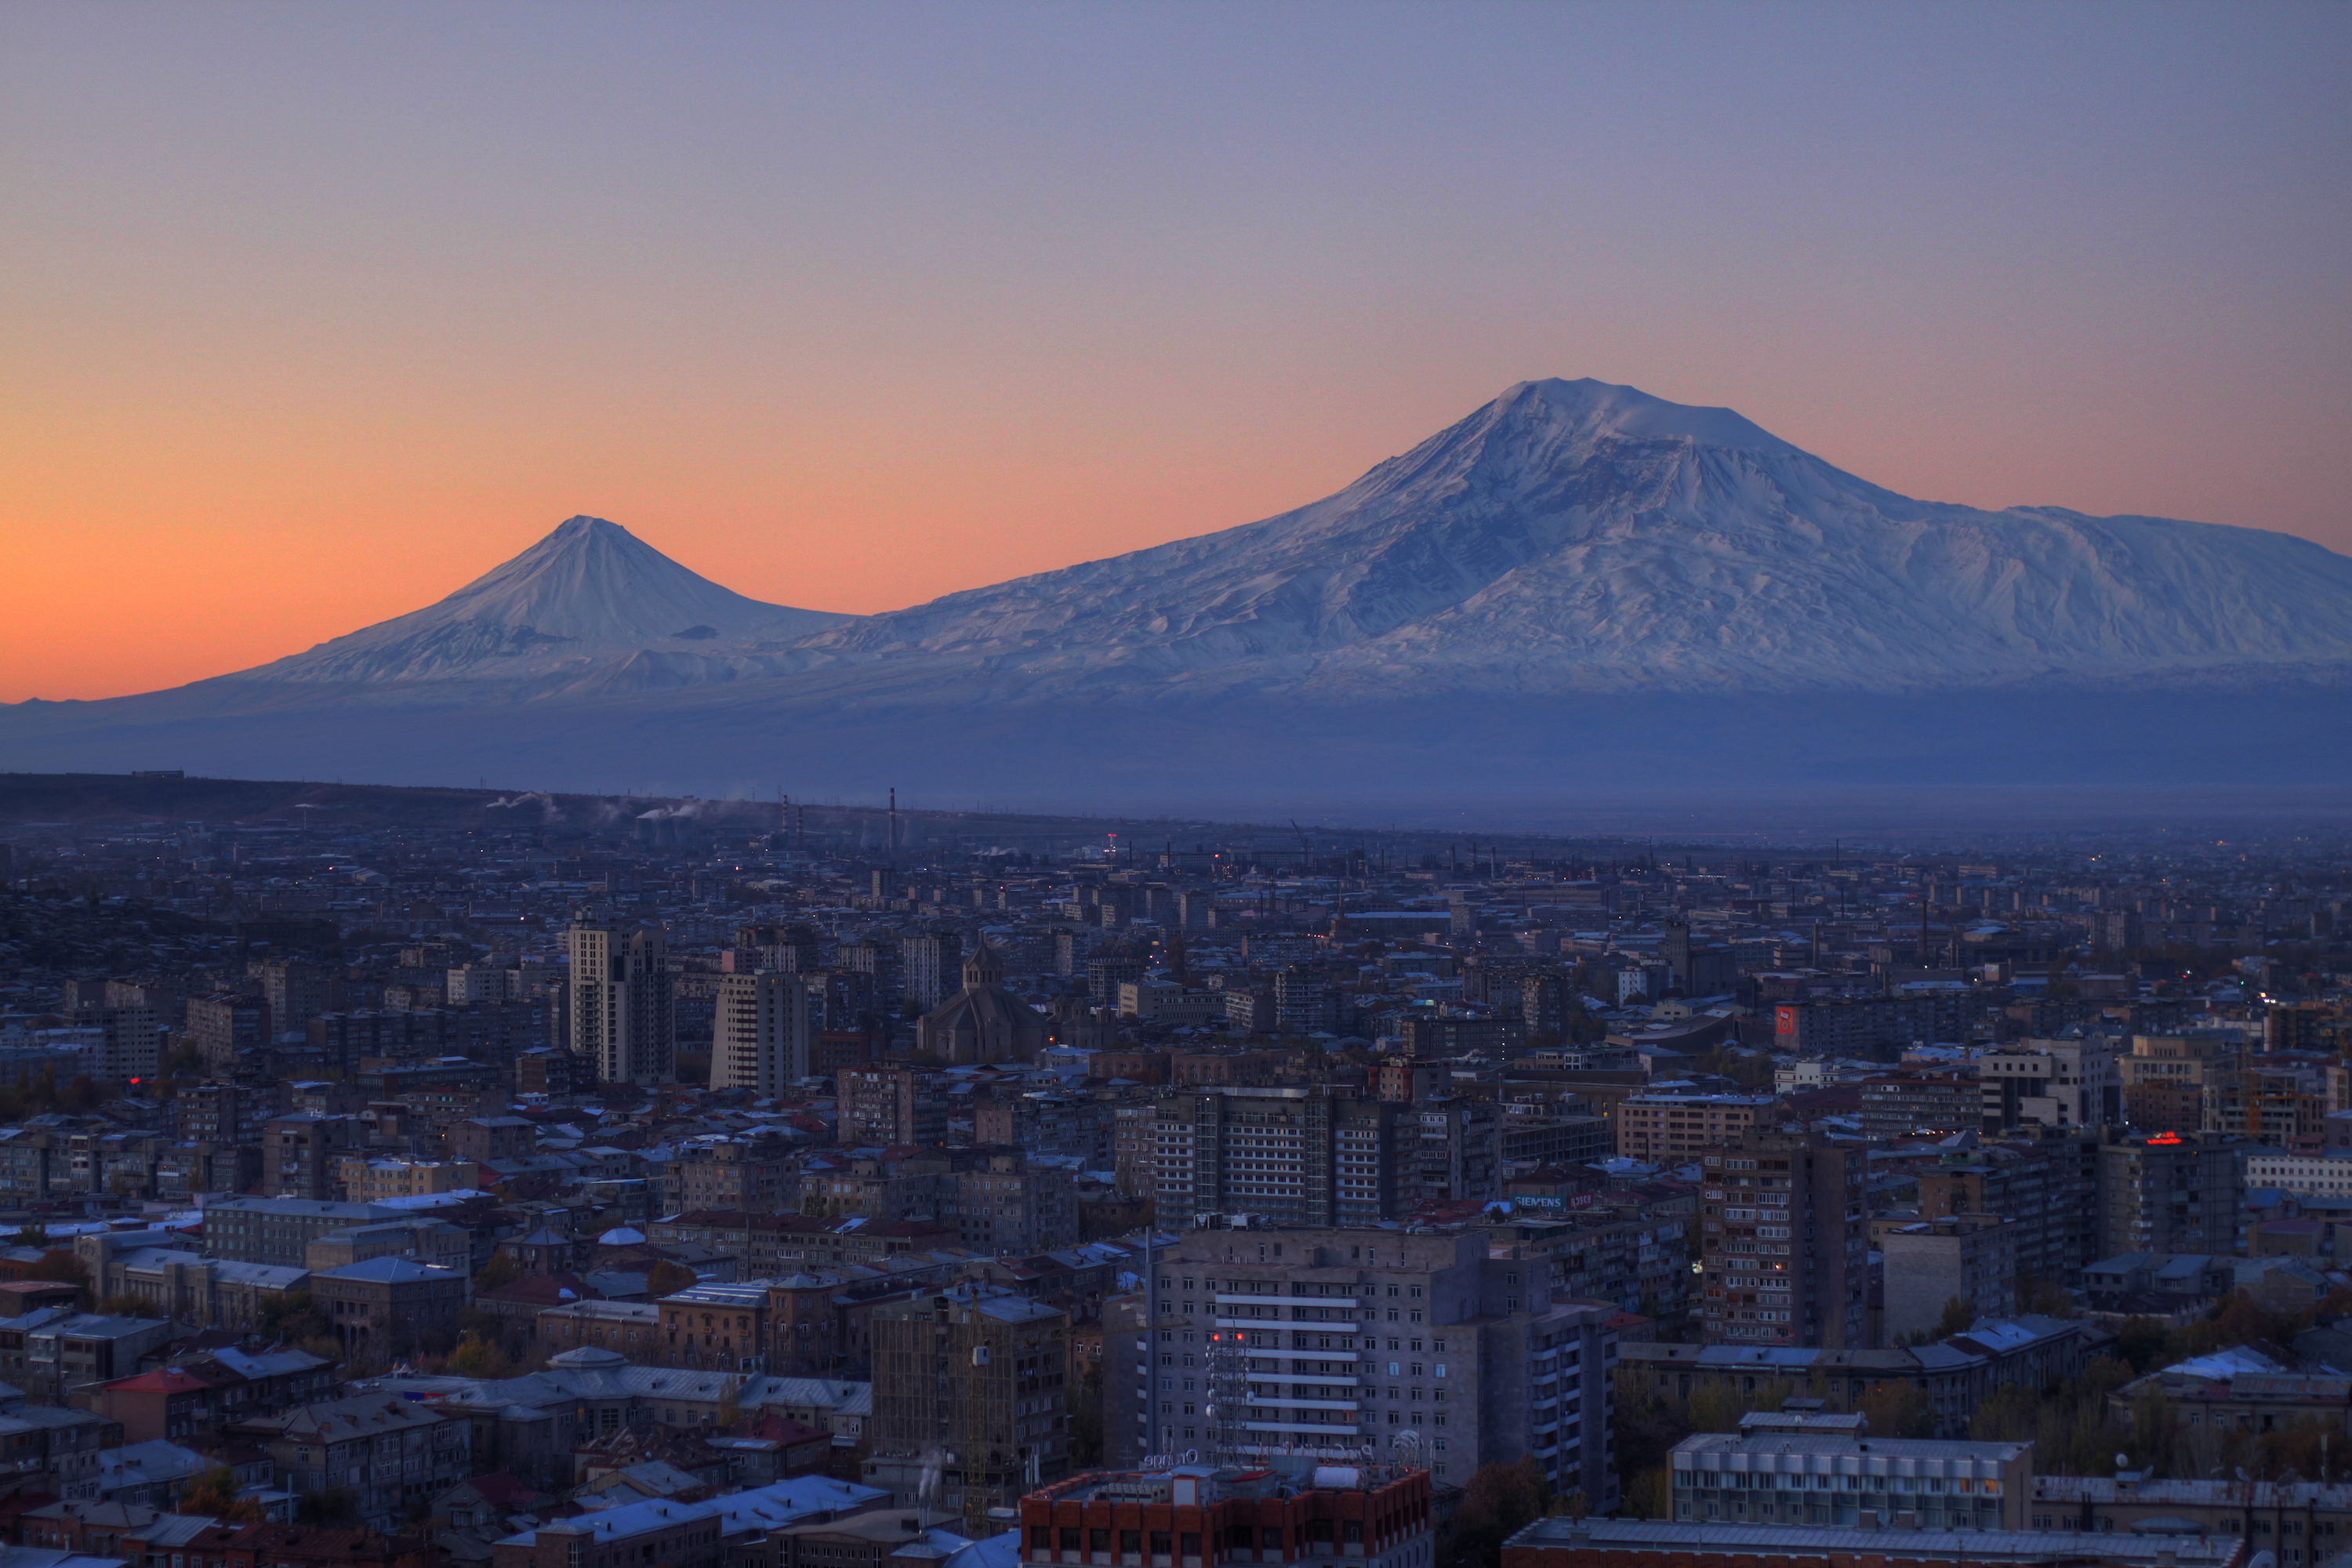 Yerevan and Mount Ararat, Armenia